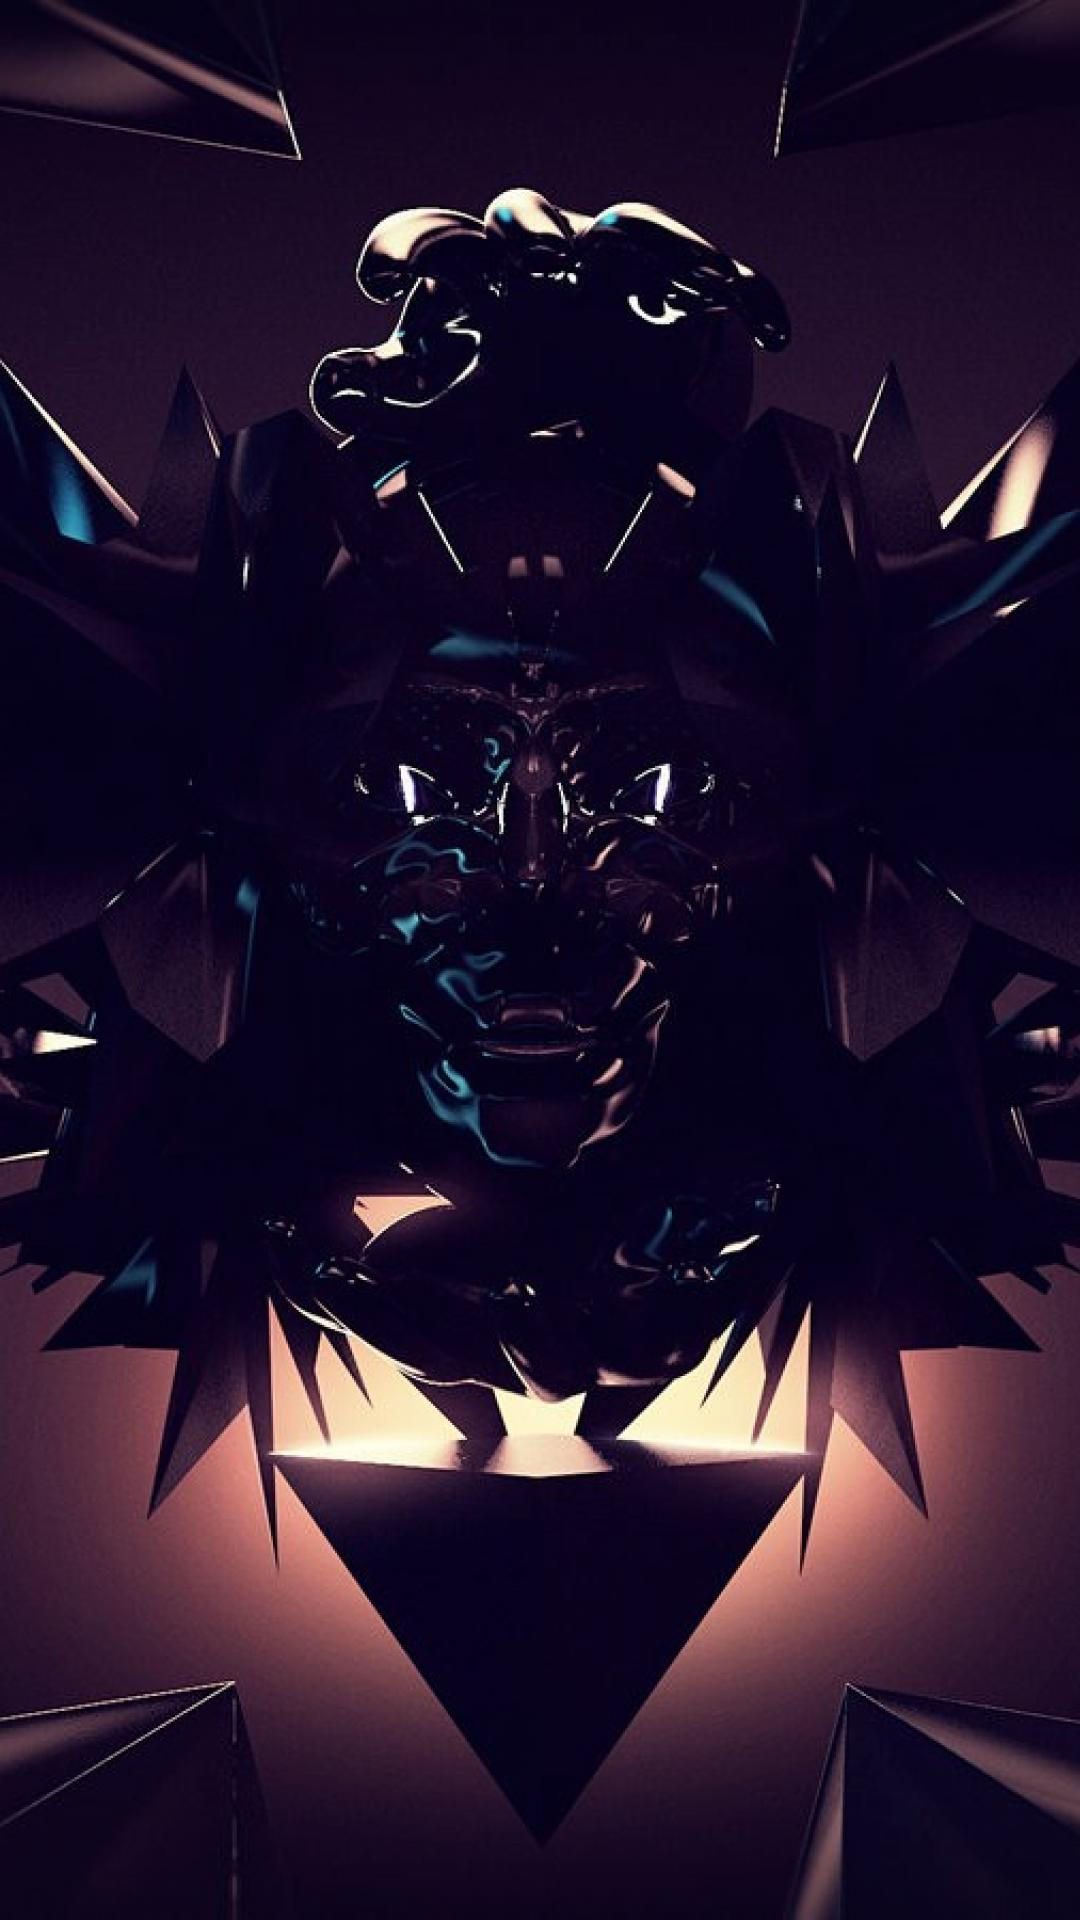 Free Abstract 3d Lacza Destiny Wallpaper